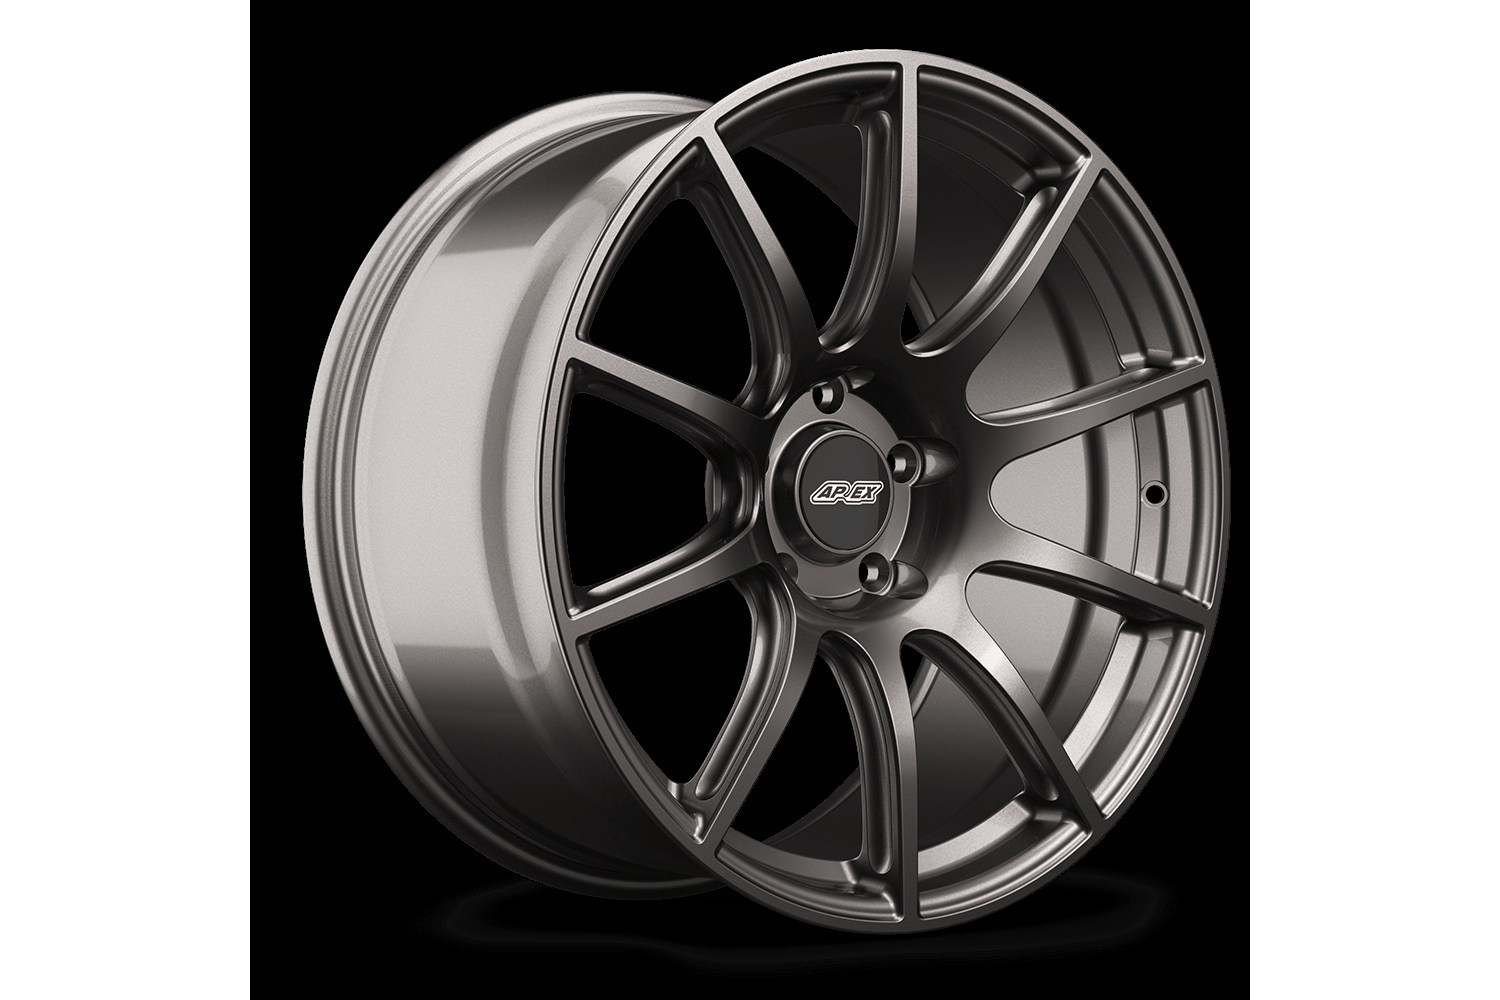 2005 Mustang Wheels >> Apex Sm 10 Mustang 19x11 5 Et 56 Anthracite Wheel 2005 2019